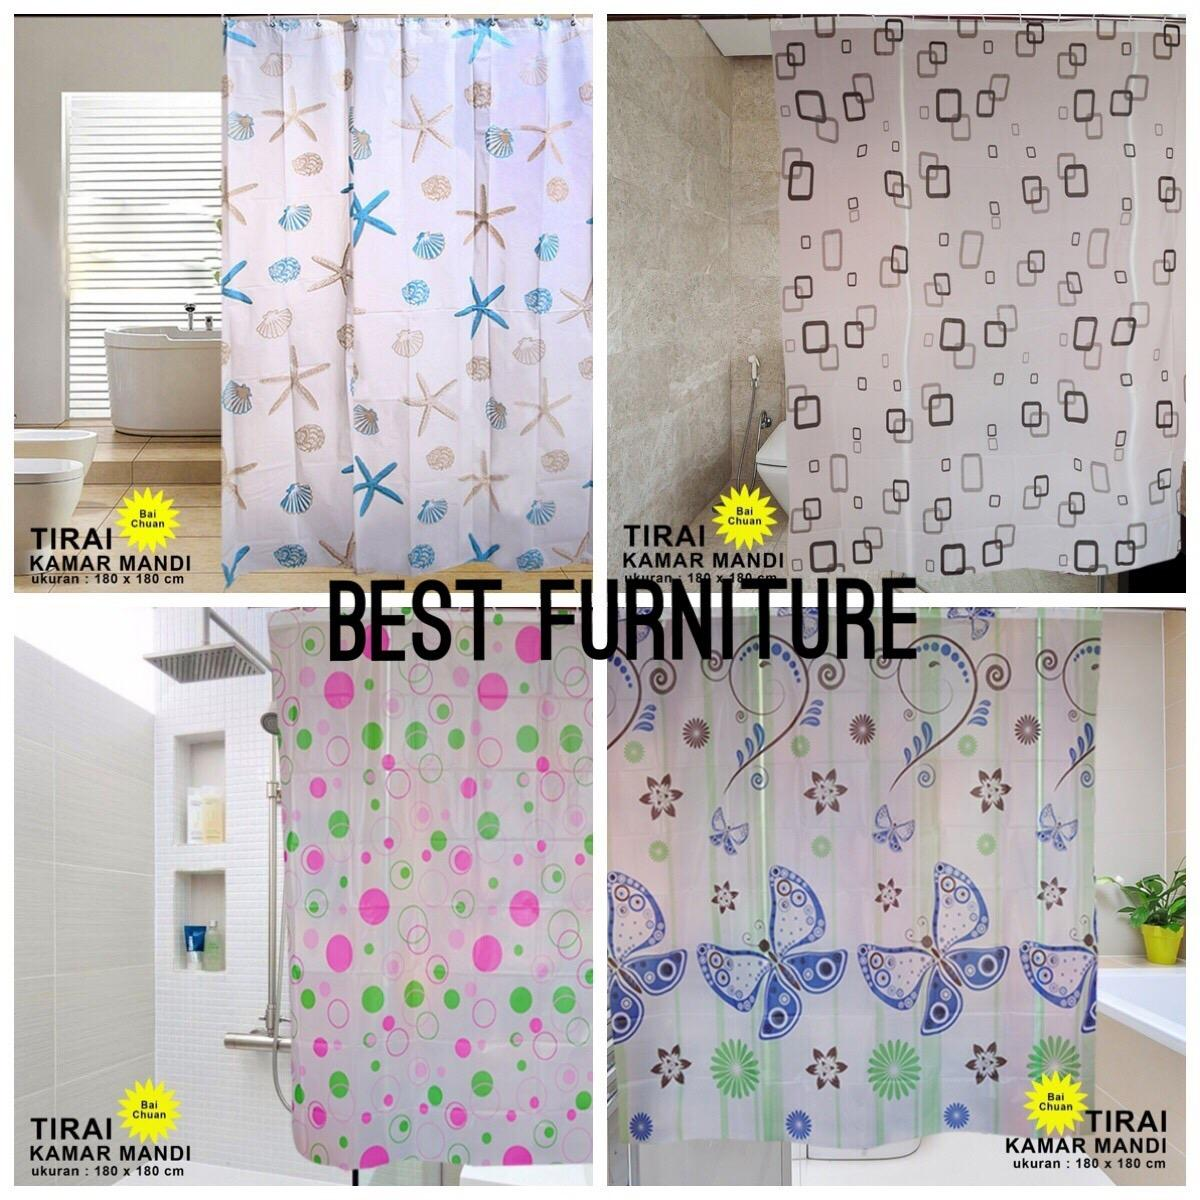 Best Shower Curtain 180 X 180cm Tirai Kamar Mandi Bathroom Waterproof Gorden Hordeng Toilet - Random By Best Furniture.